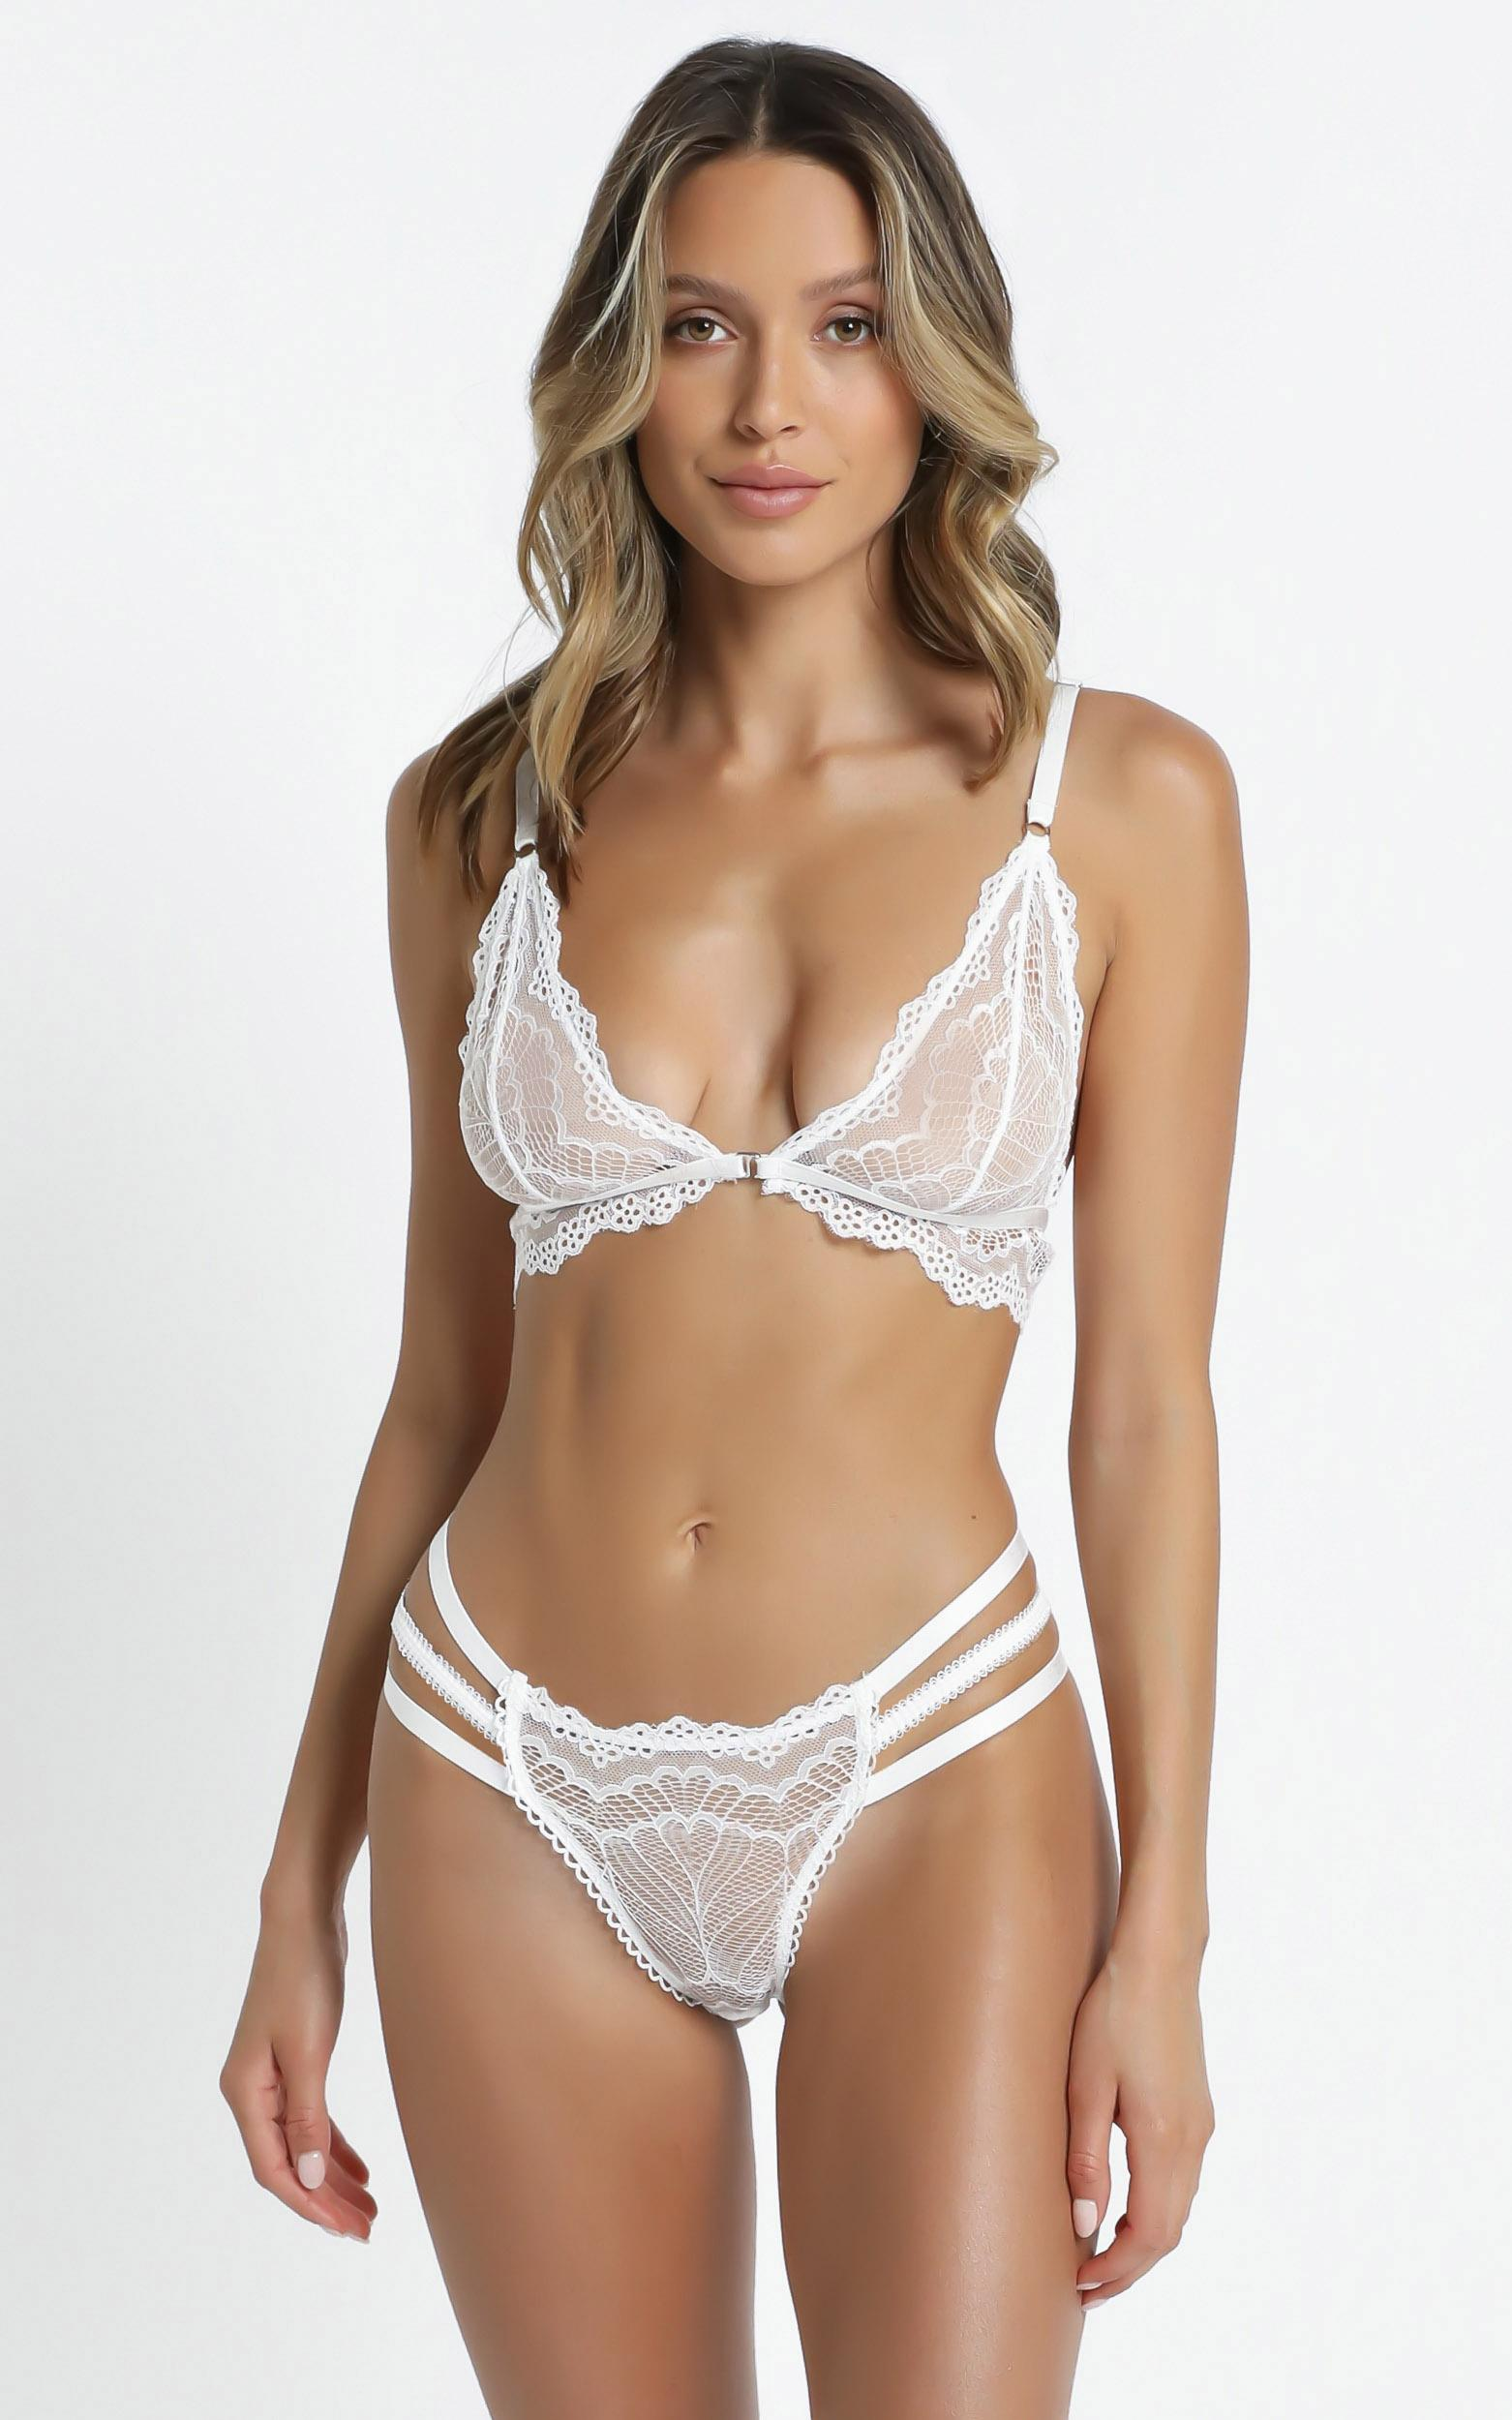 Kat The Label - Vienna Thong in White - XS, White, hi-res image number null